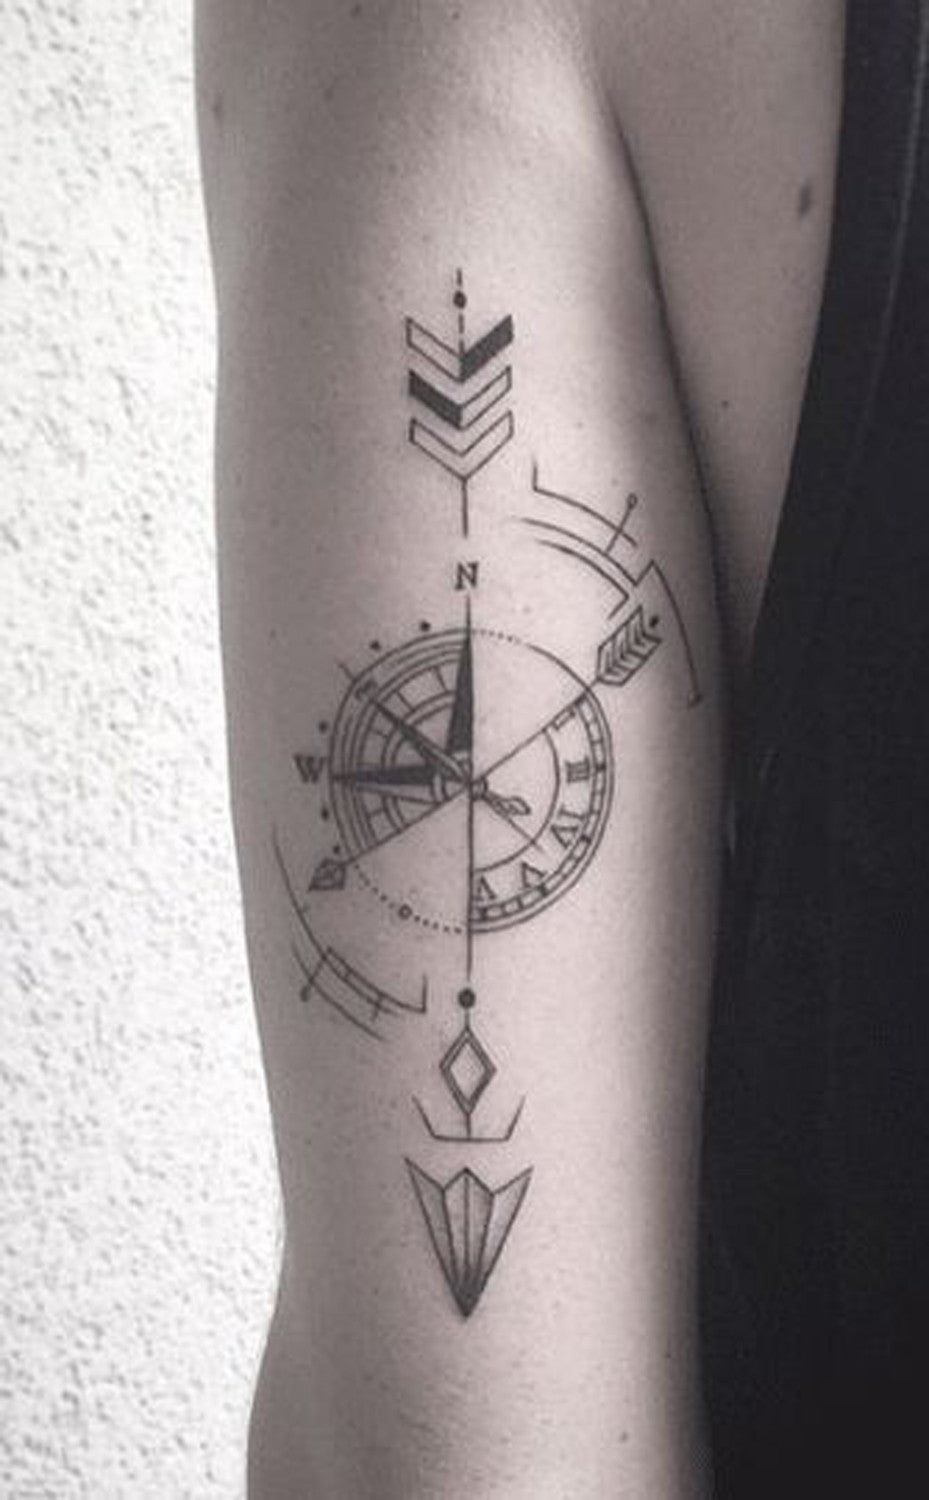 Compass Arrow Back of Arm Forearm Tattoo Ideas at MyBodiArt.com